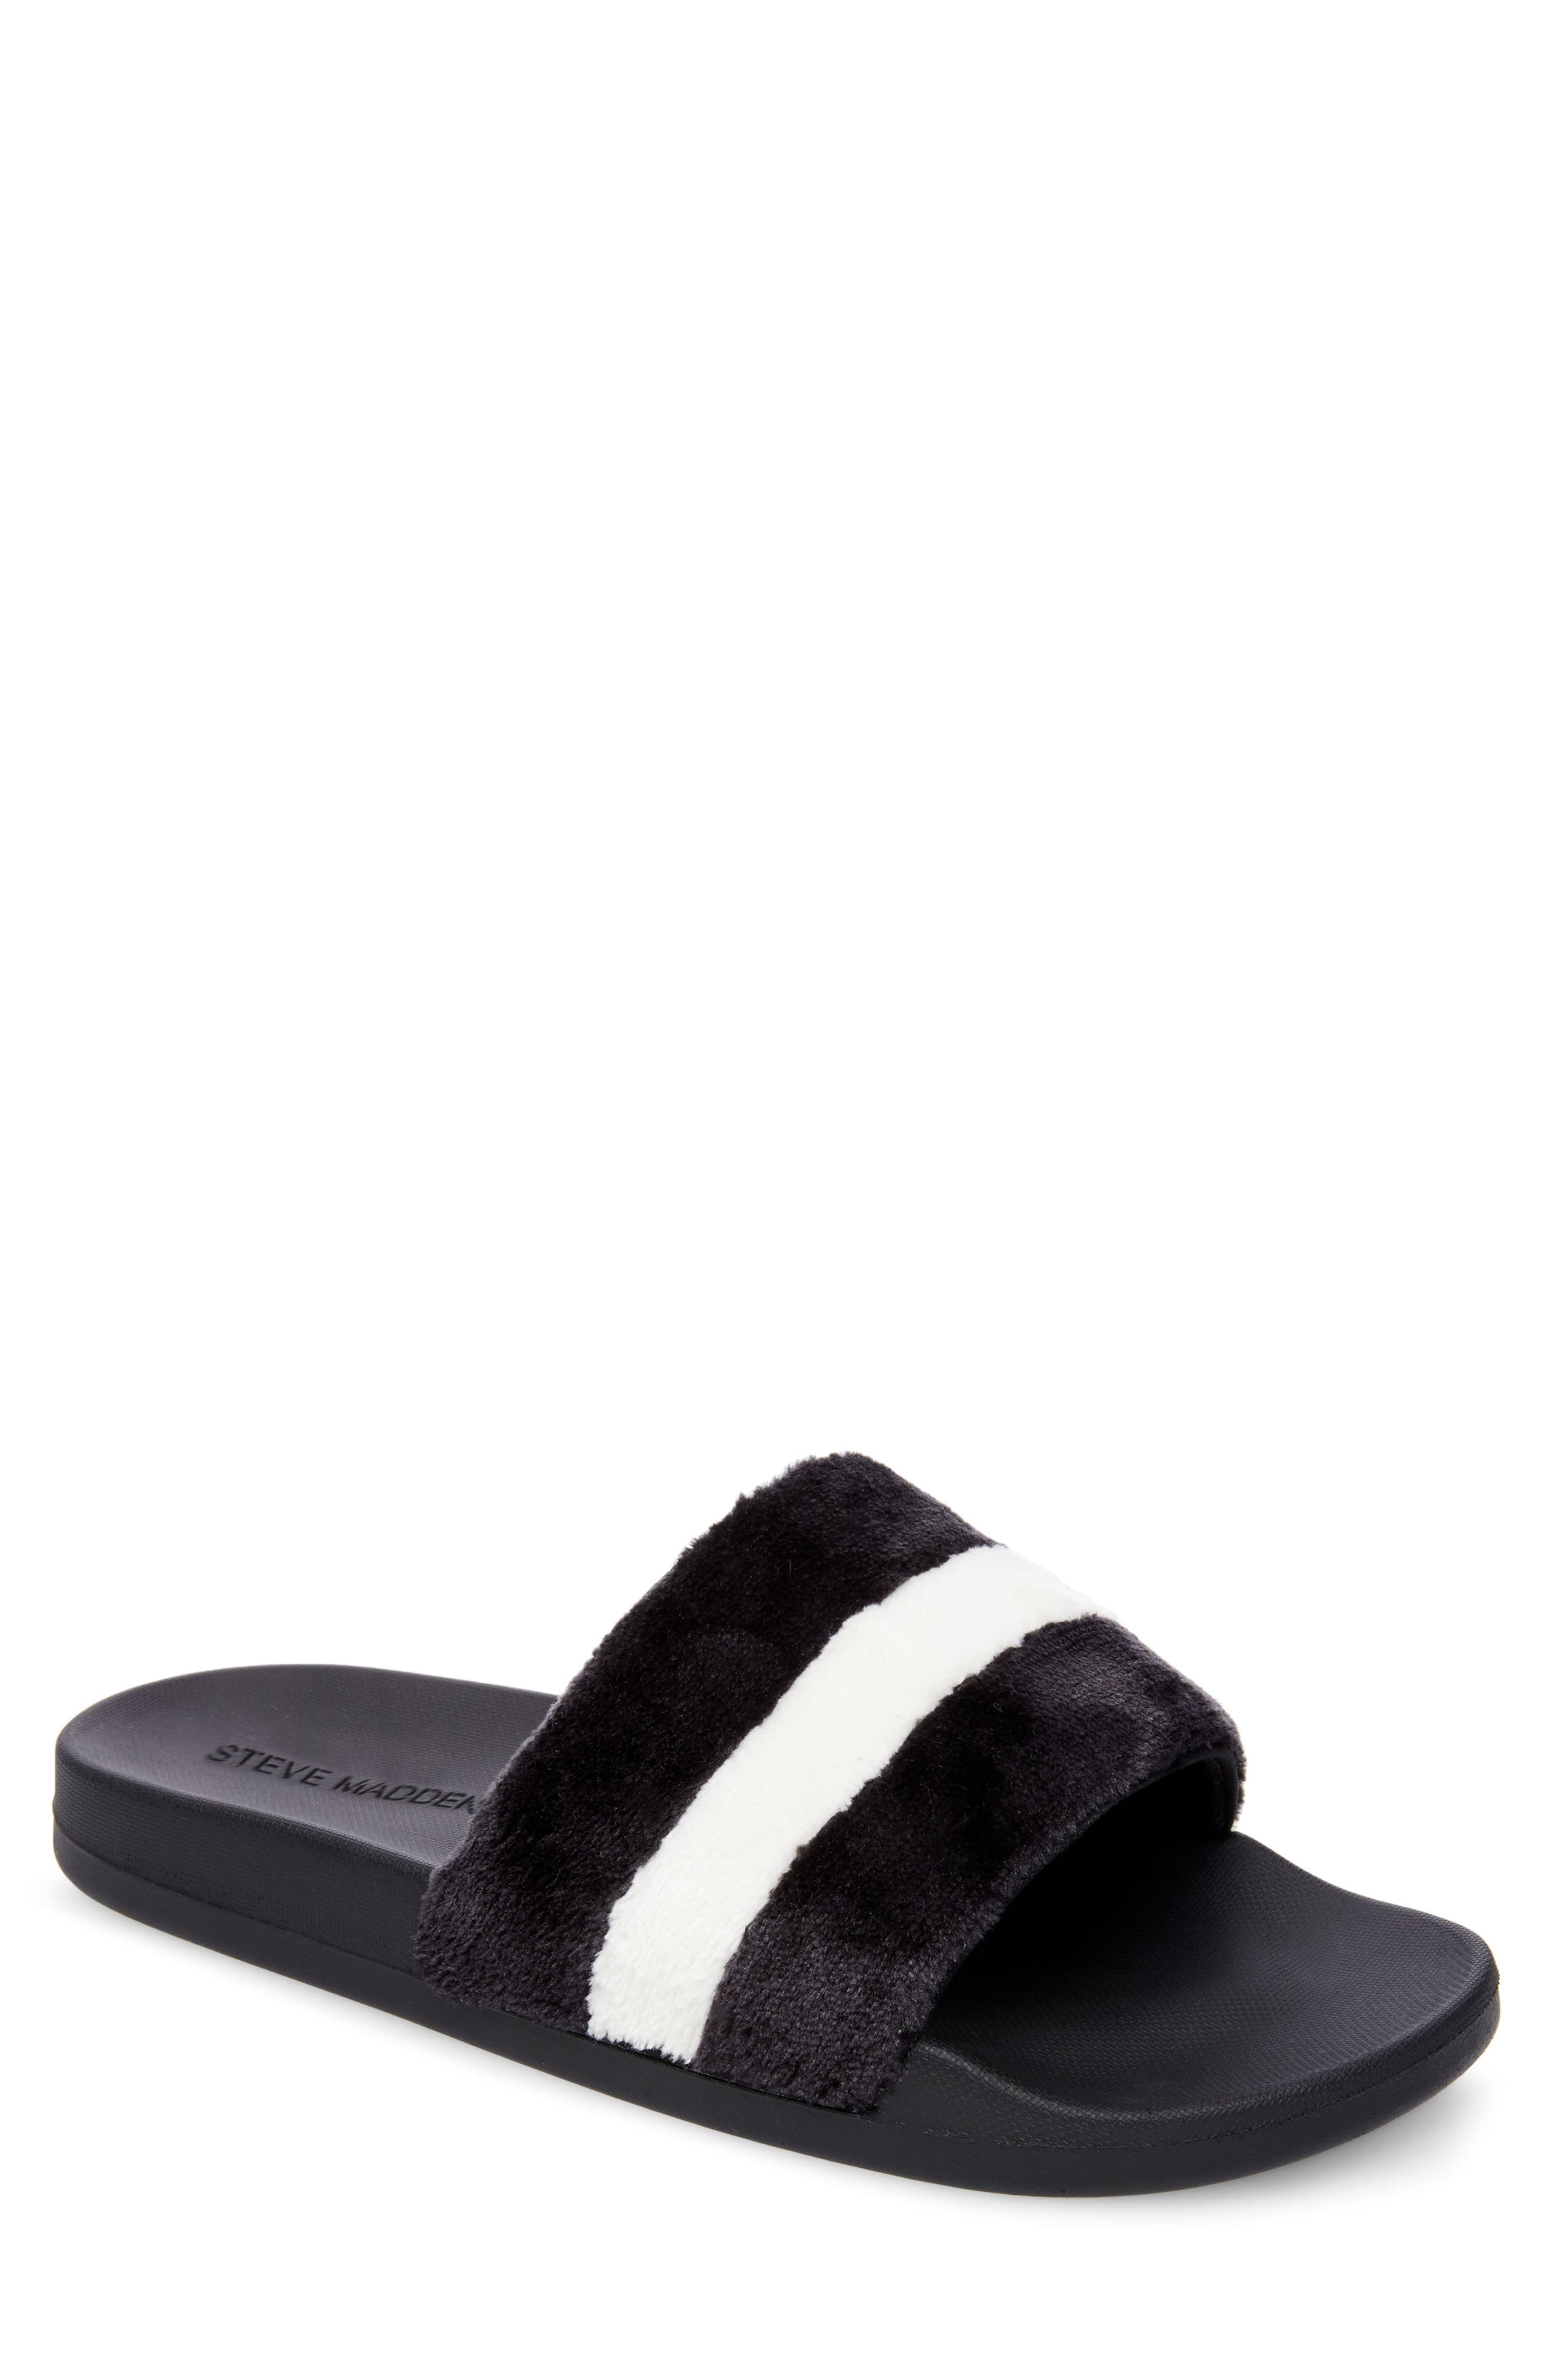 Resport Plush Slide Sandal,                         Main,                         color, 003